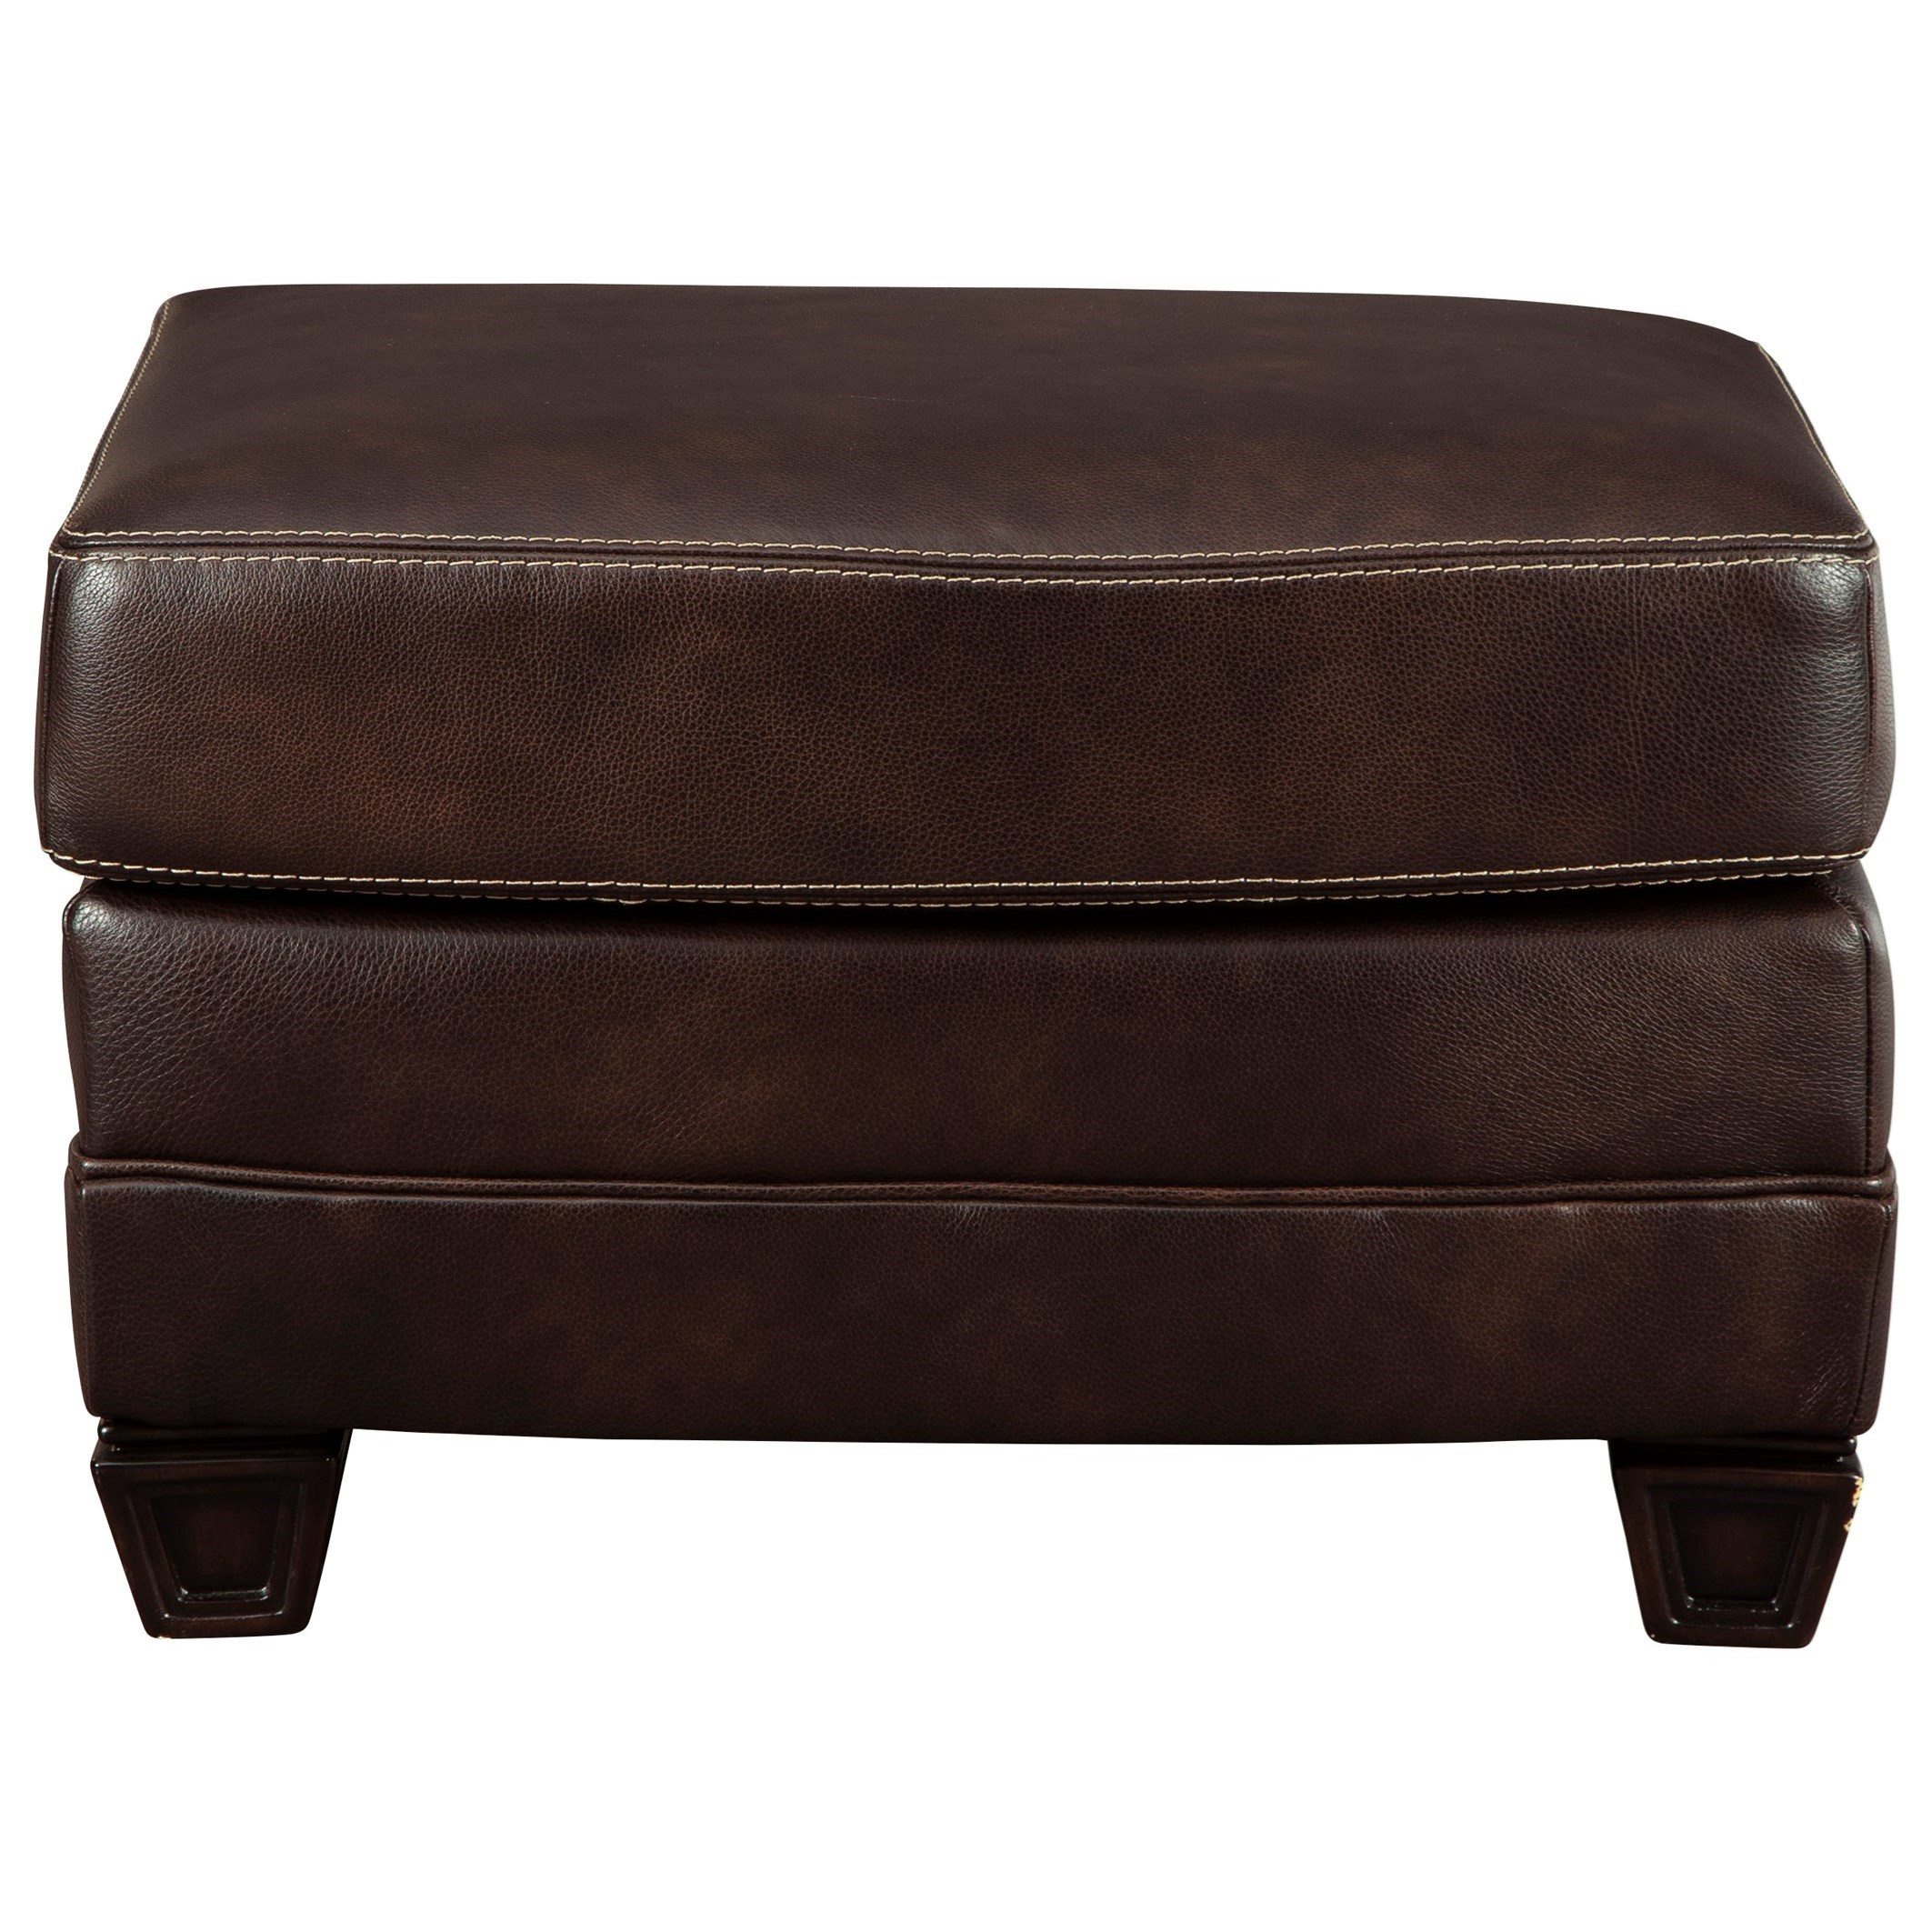 Embrook Ottoman by Signature Design by Ashley at Northeast Factory Direct